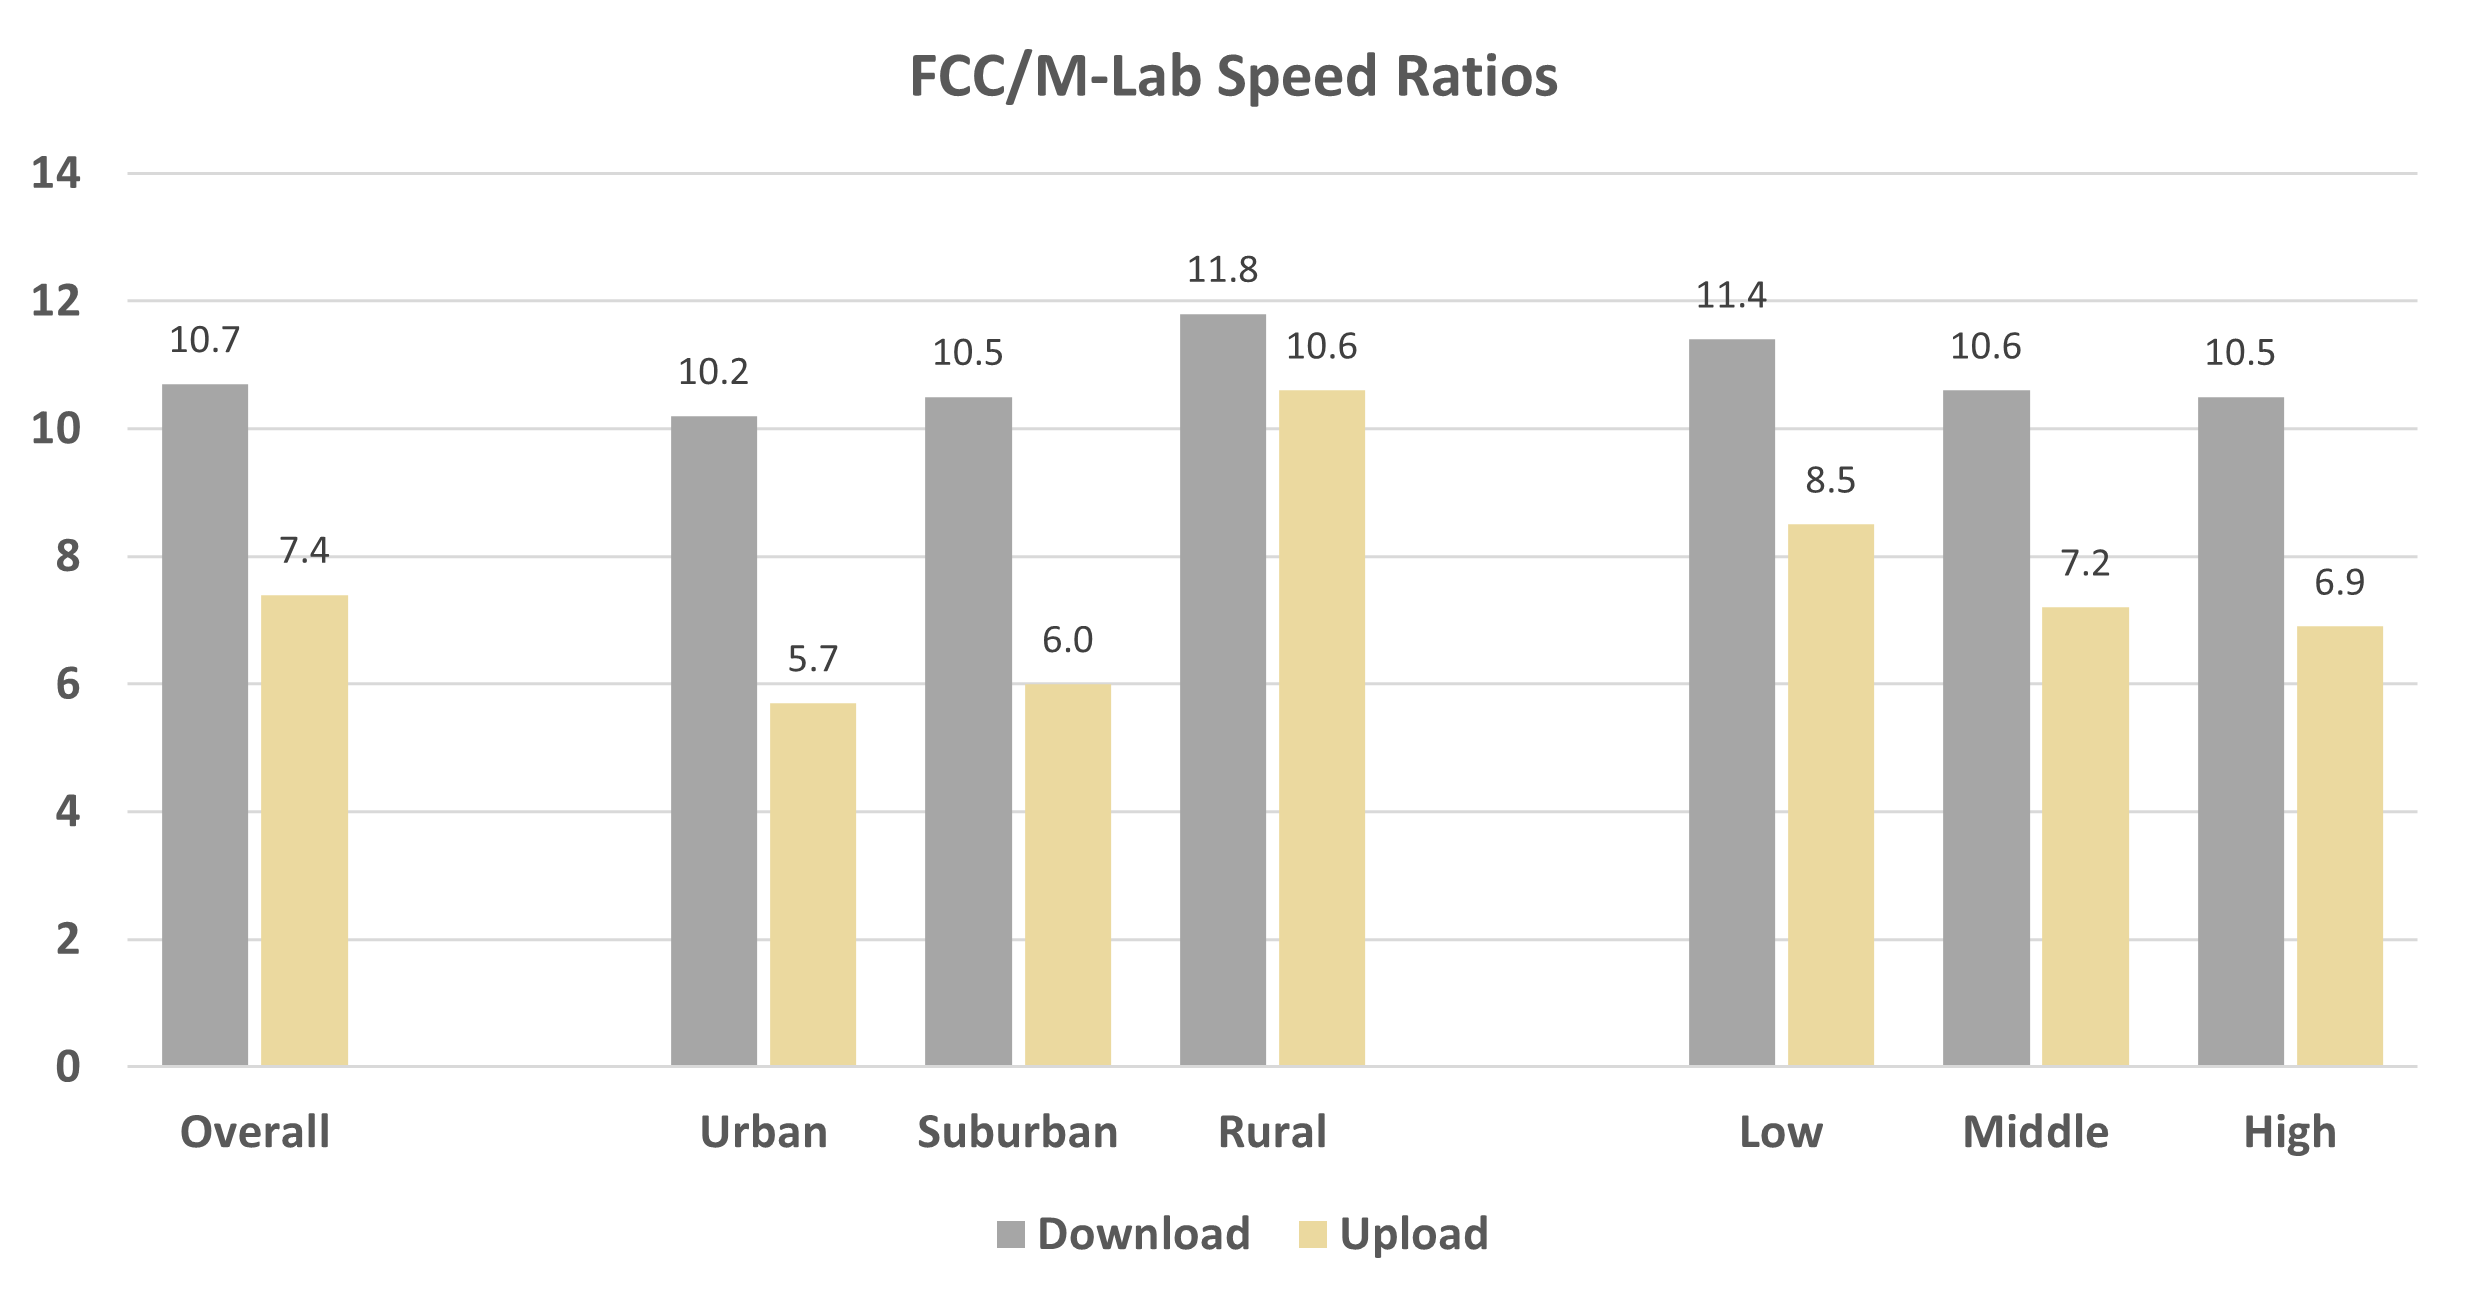 FCC/M-Lab Speed Ratios